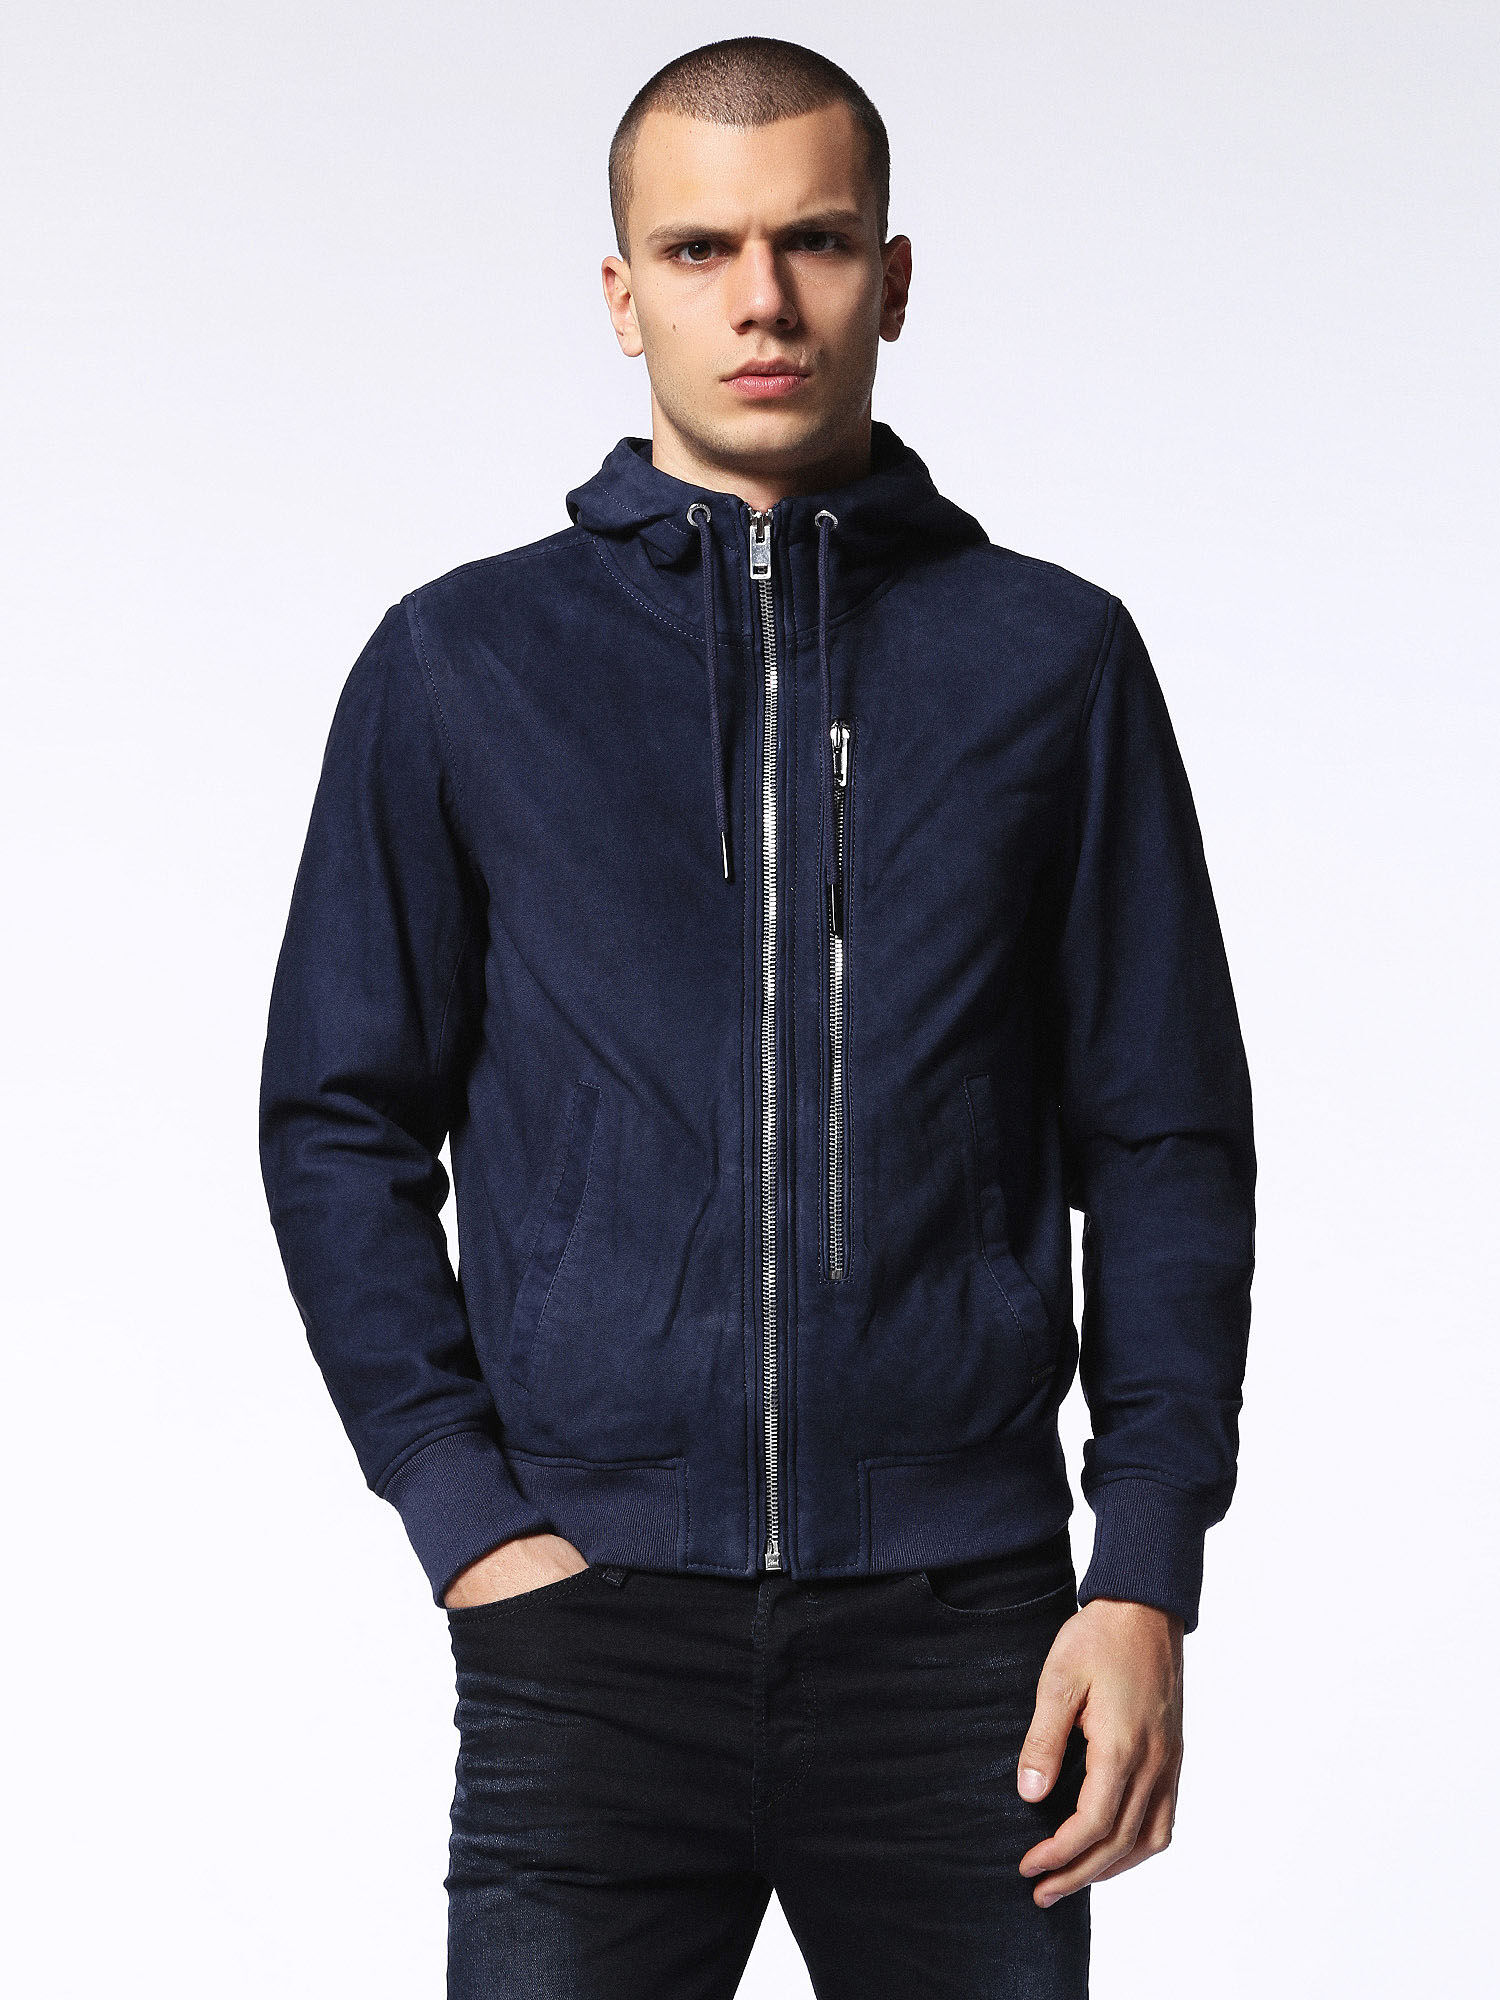 nike jackets on sale